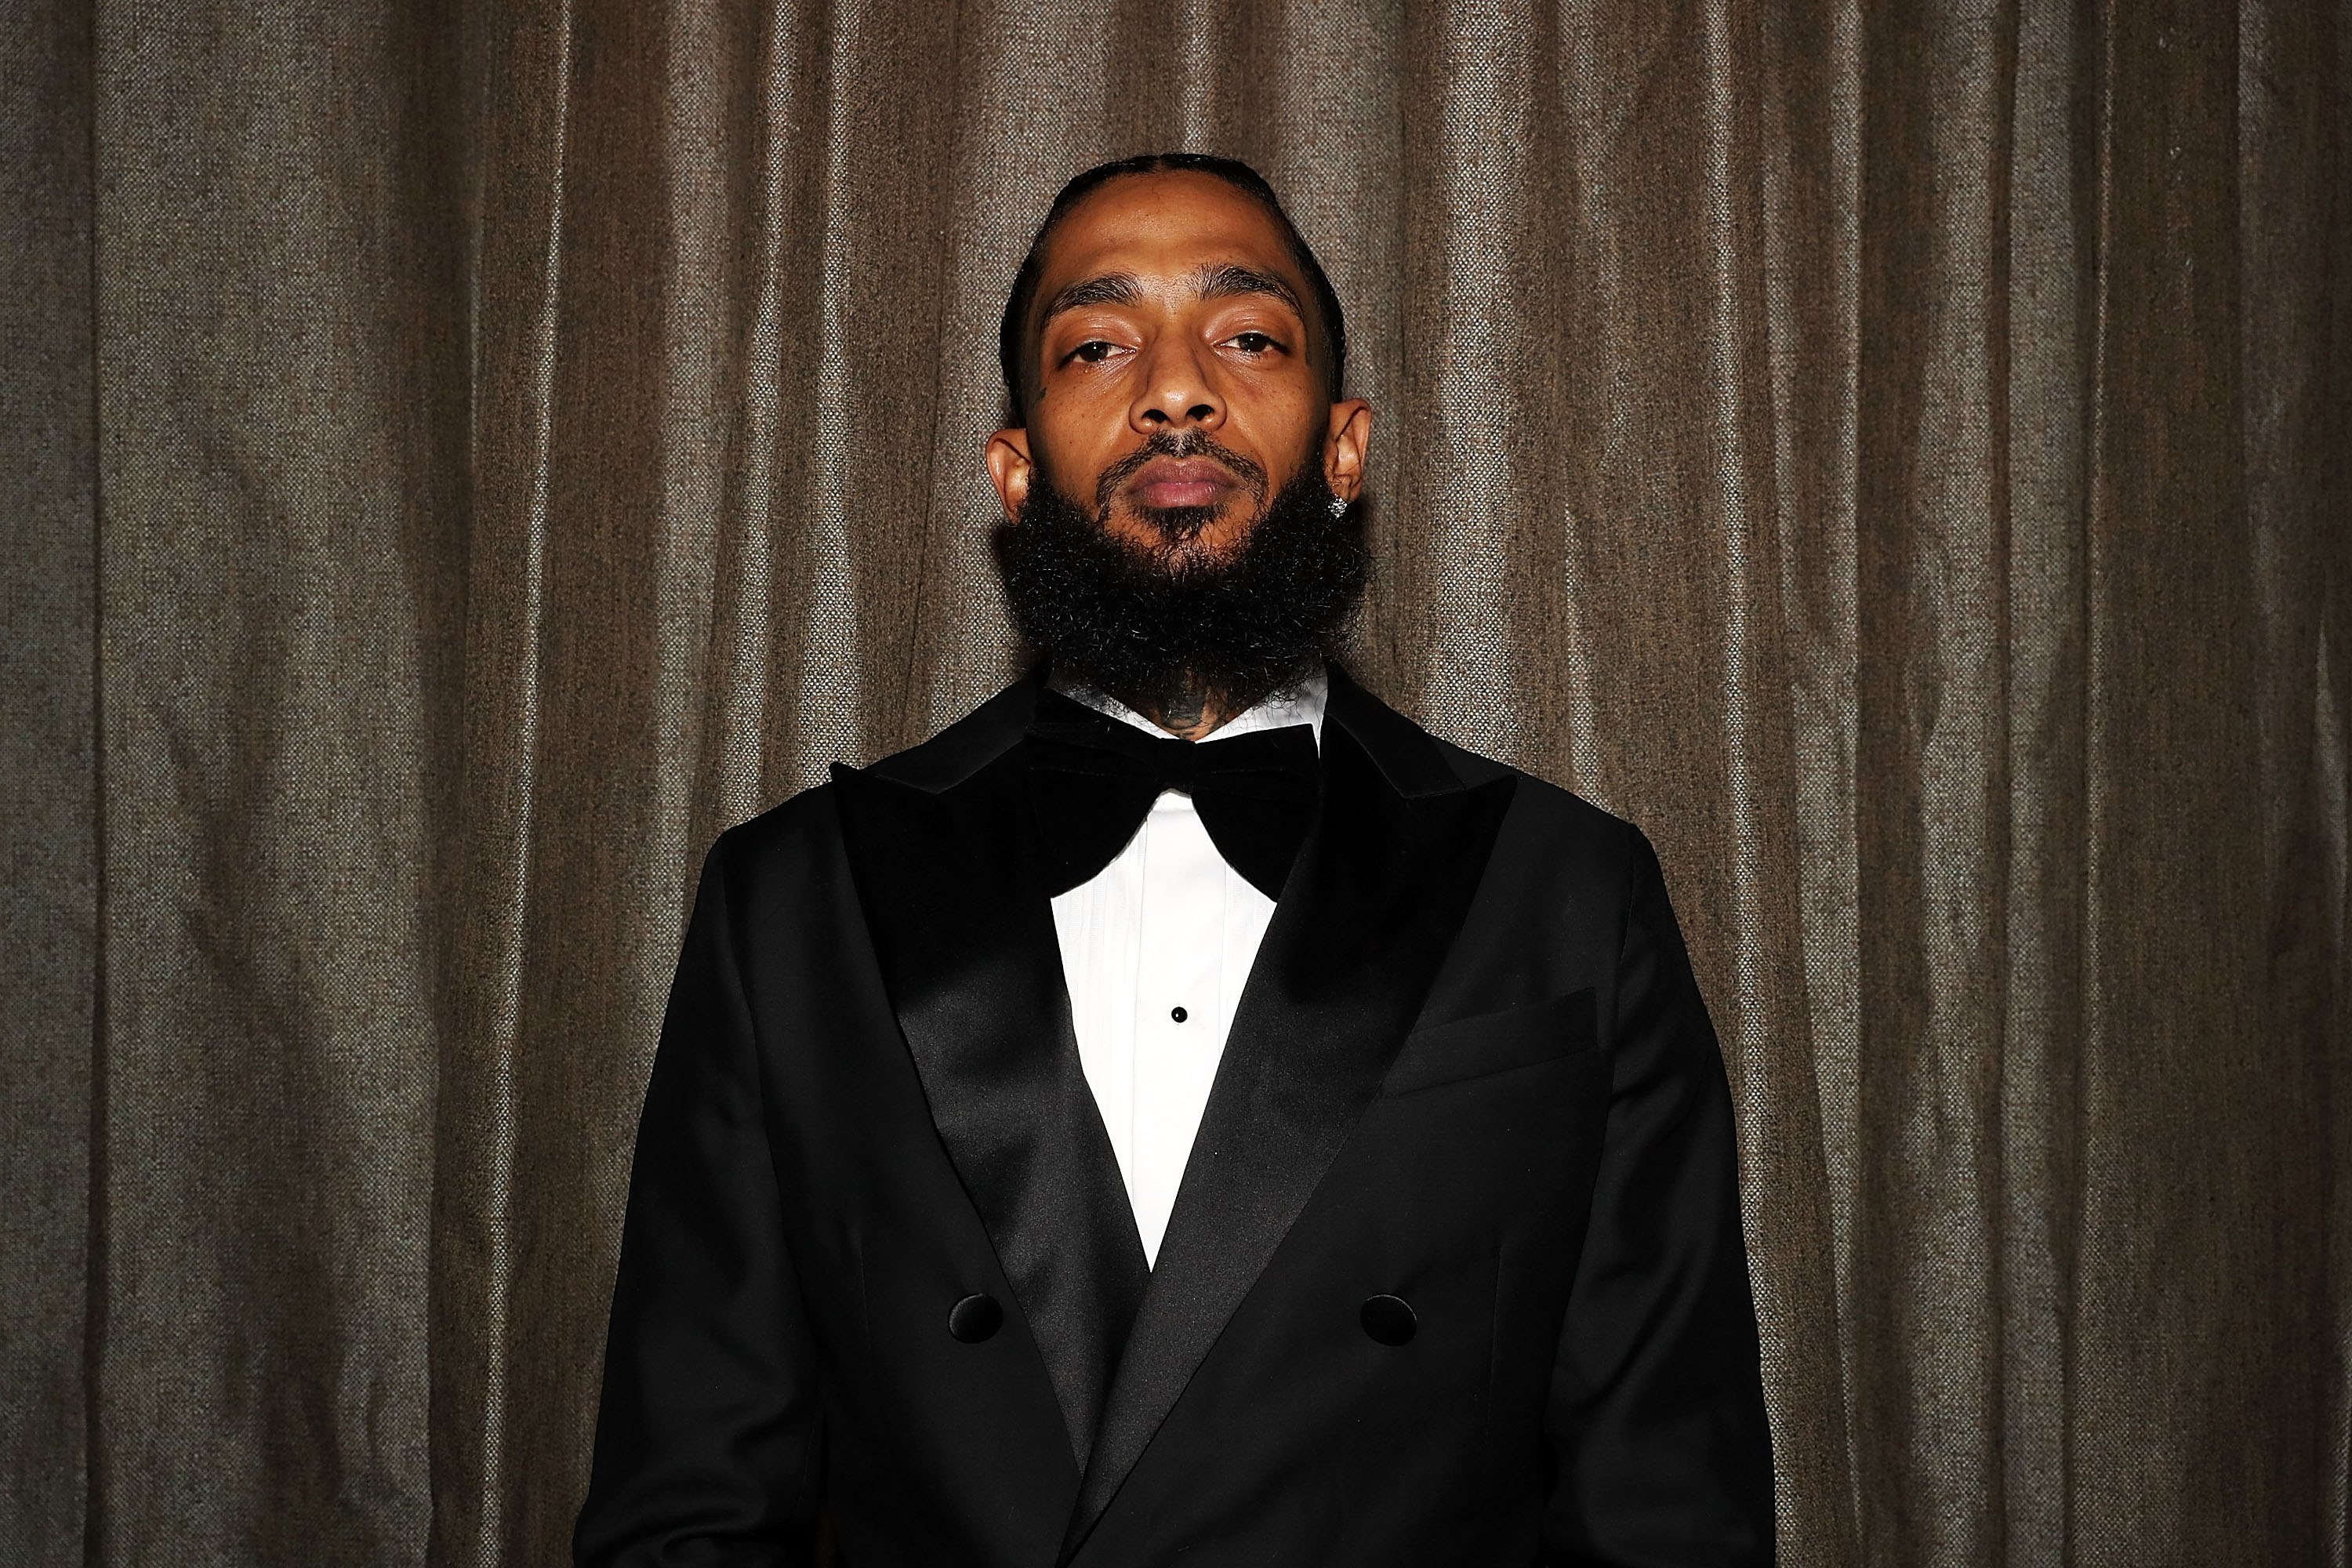 New Details Revealed About The Moment Nipsey Hussle Was Shot & Killed